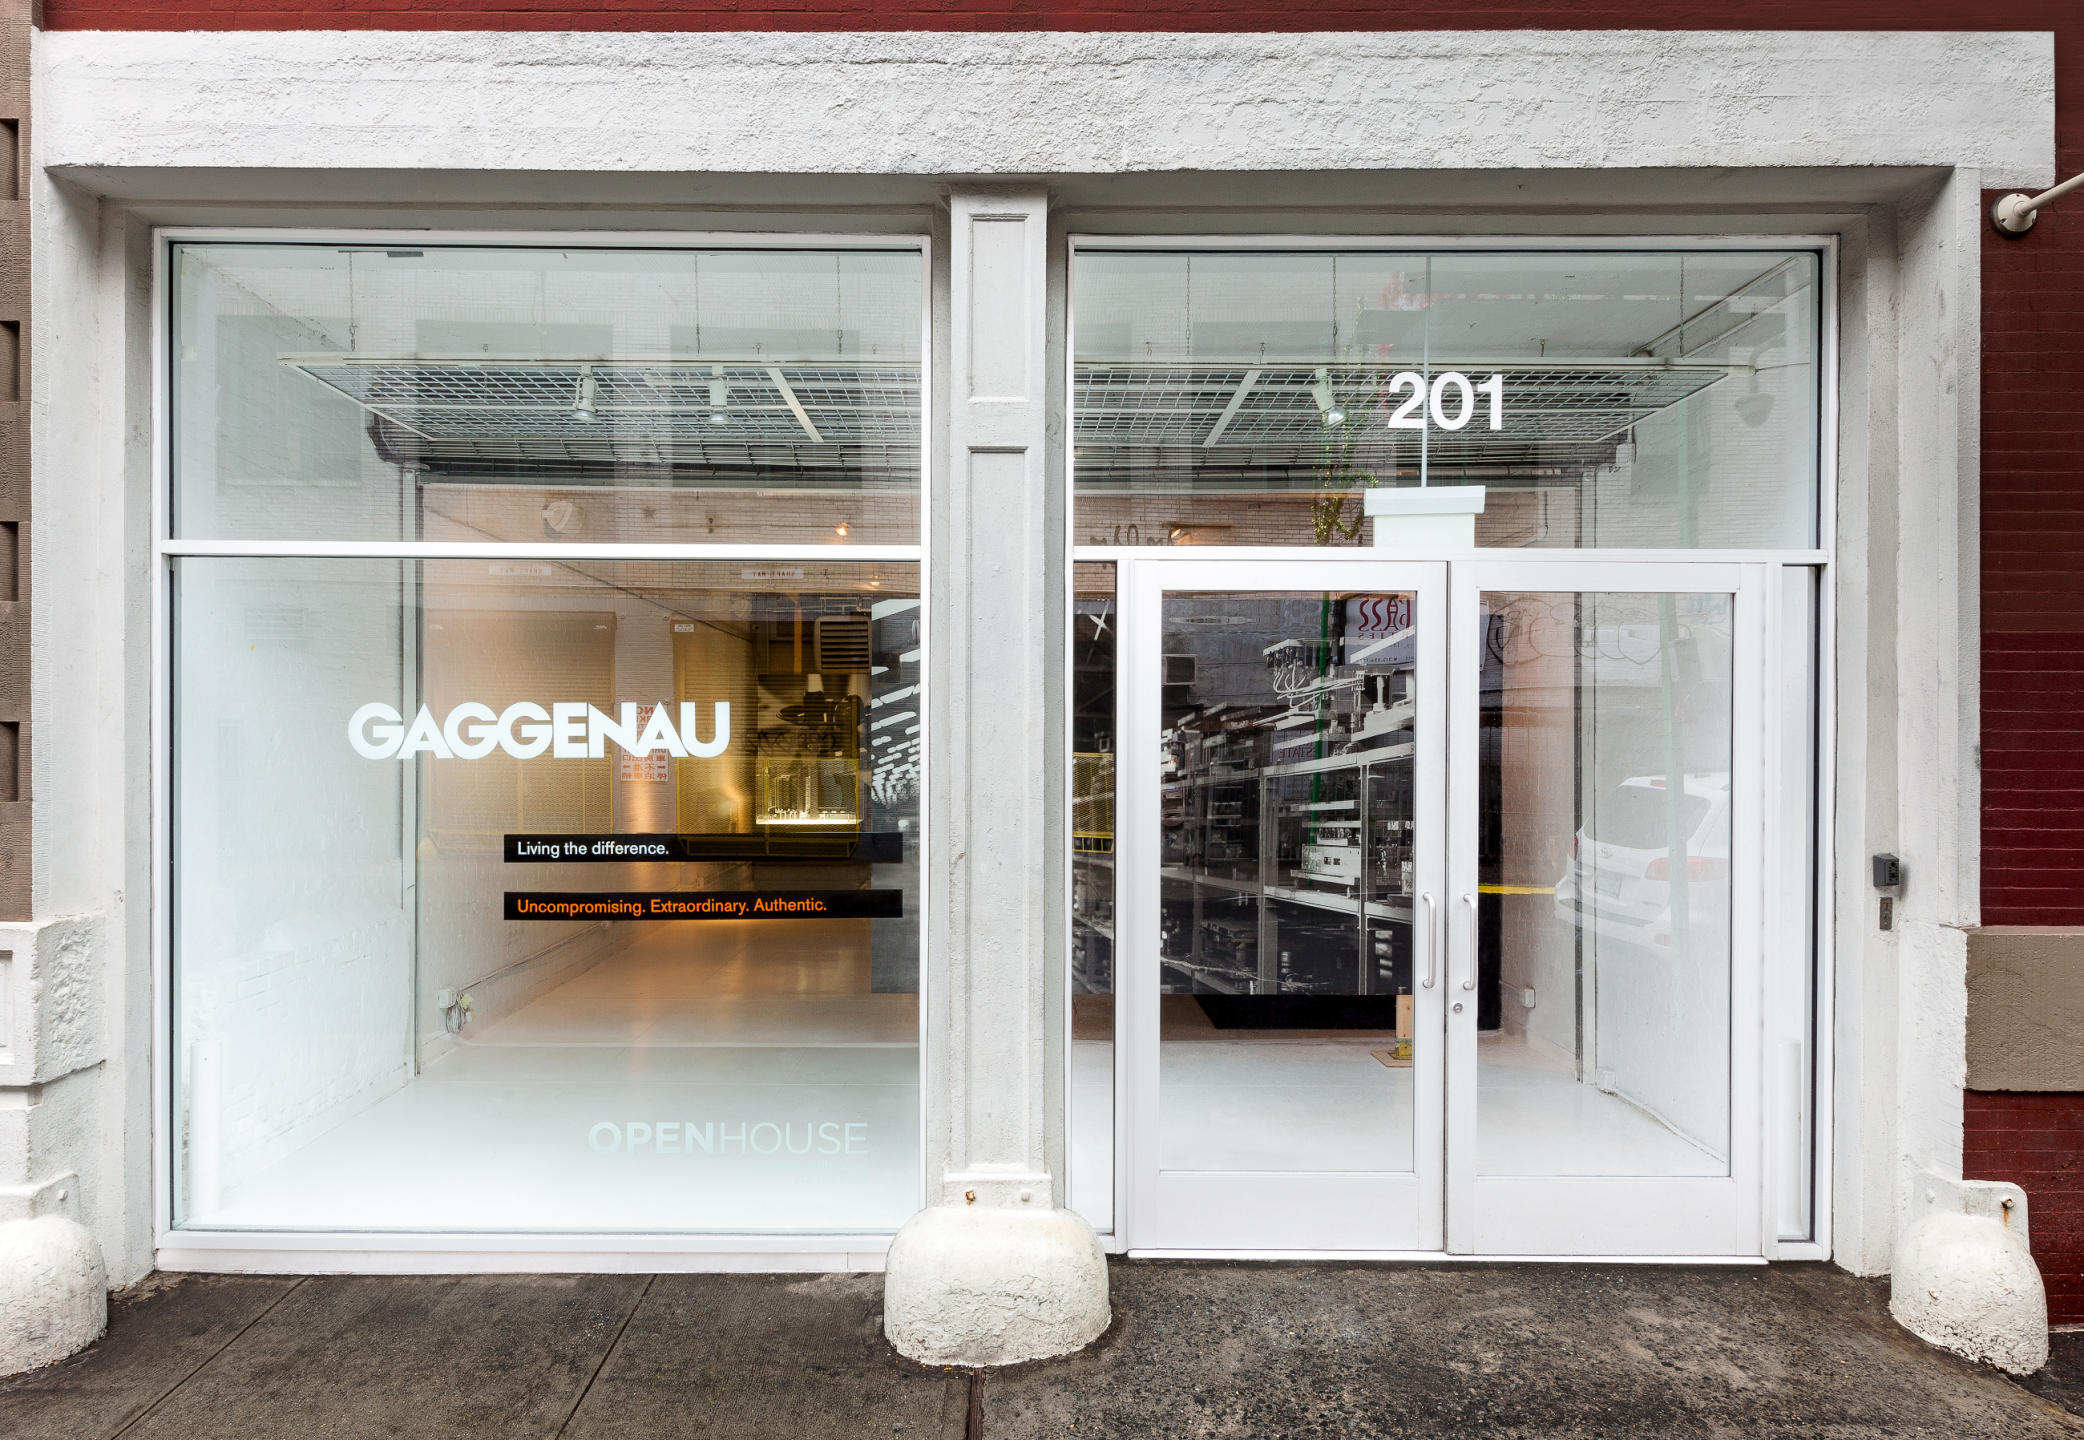 Gaggenau Home Appliances... a four day presentation at the OPENHOUSE, NY showroom featuring Gaggenau products to designers and archittects. : Miscellanous Projects : New York NY Architectural Photographer | Interior and Exterior